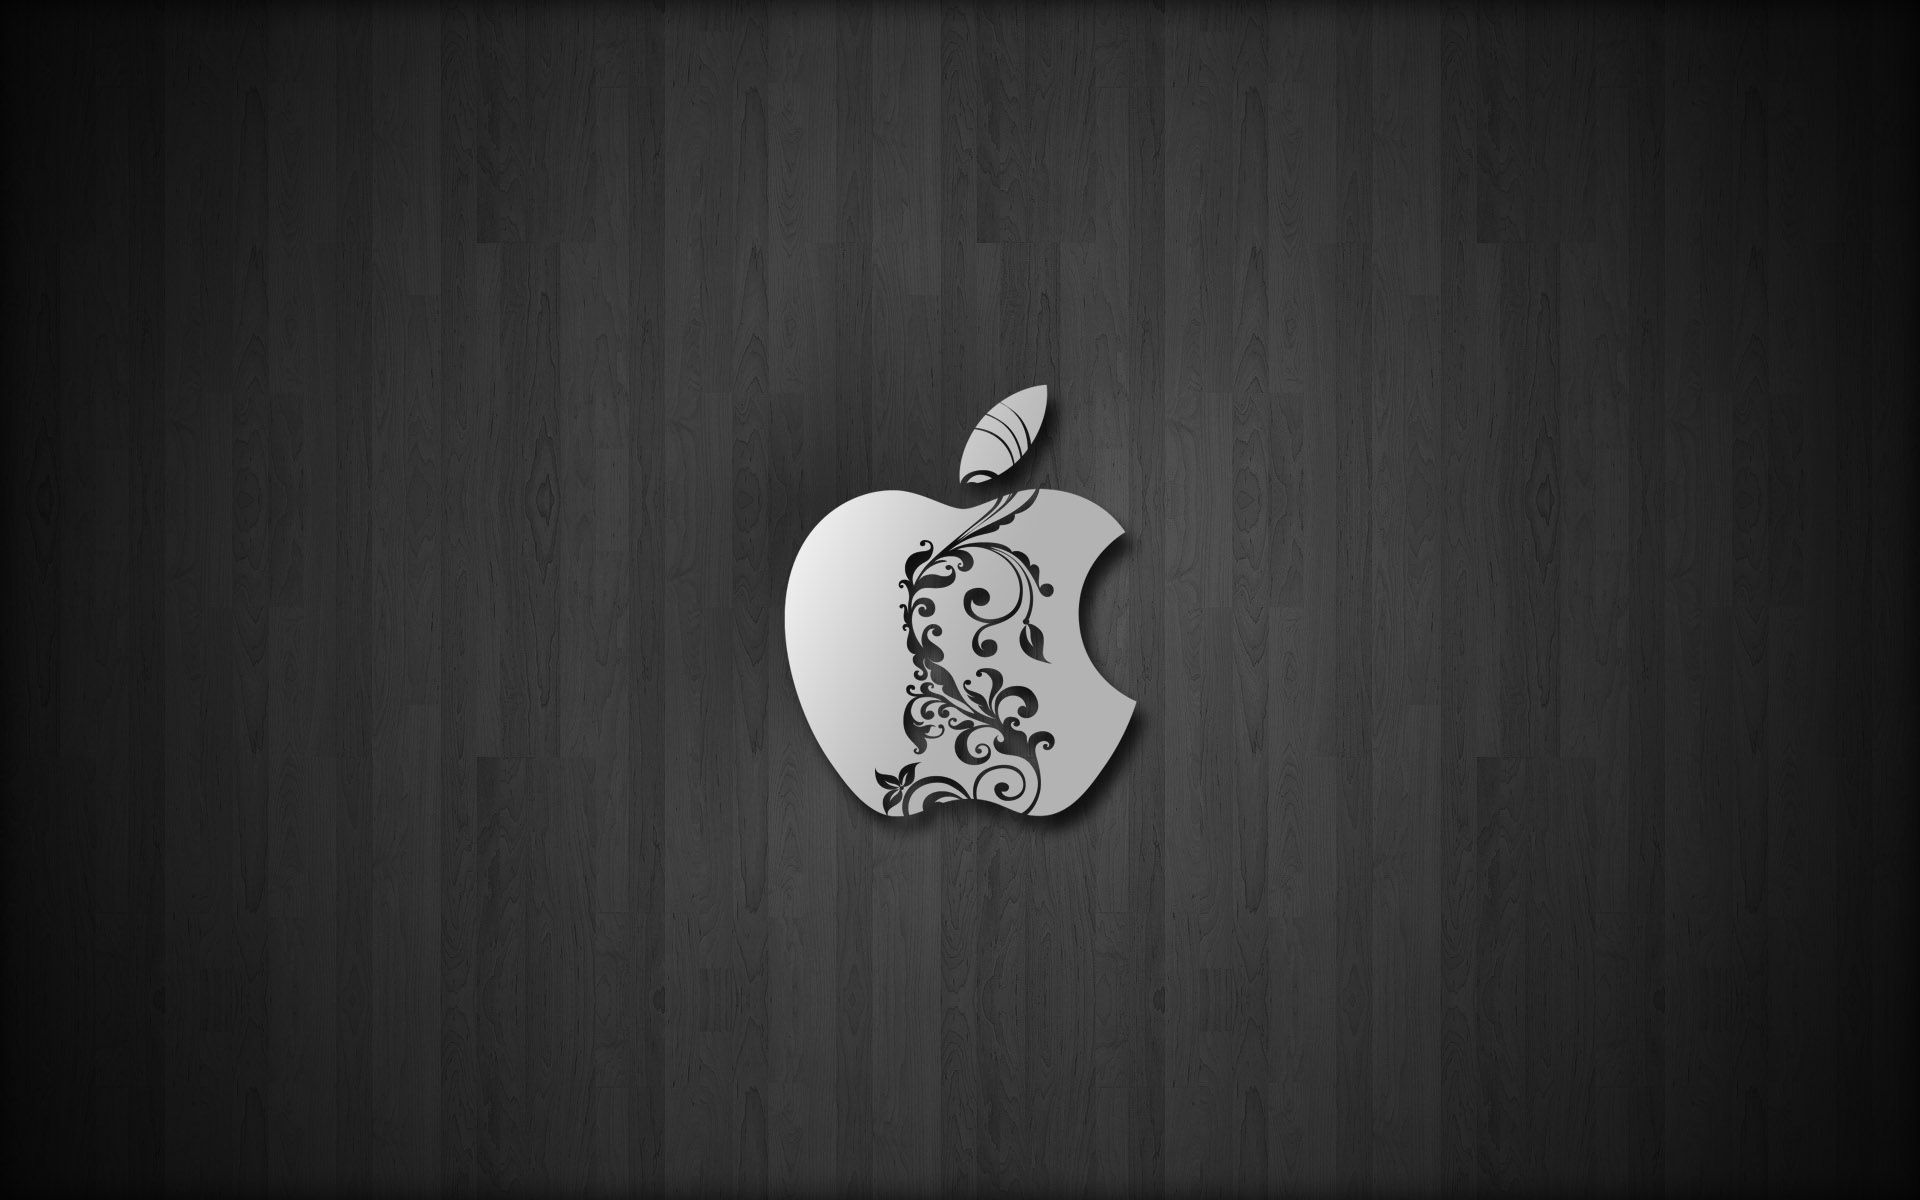 wallpapers 4k-hd Apple-alegorias.es (27)